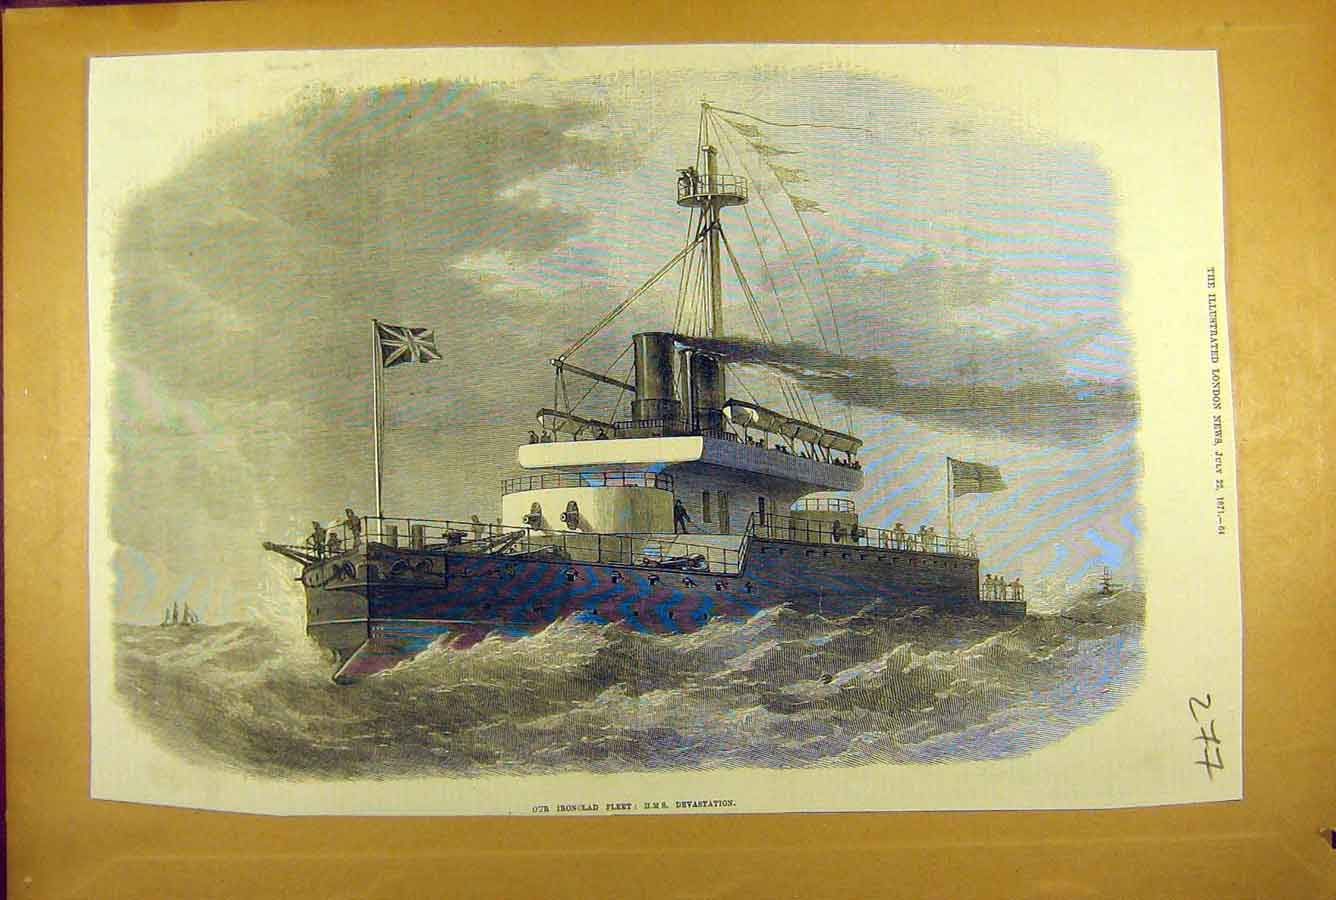 Print 1871 Ironclad Fleet Hms Devastation Ship Naval 778781 Old Original